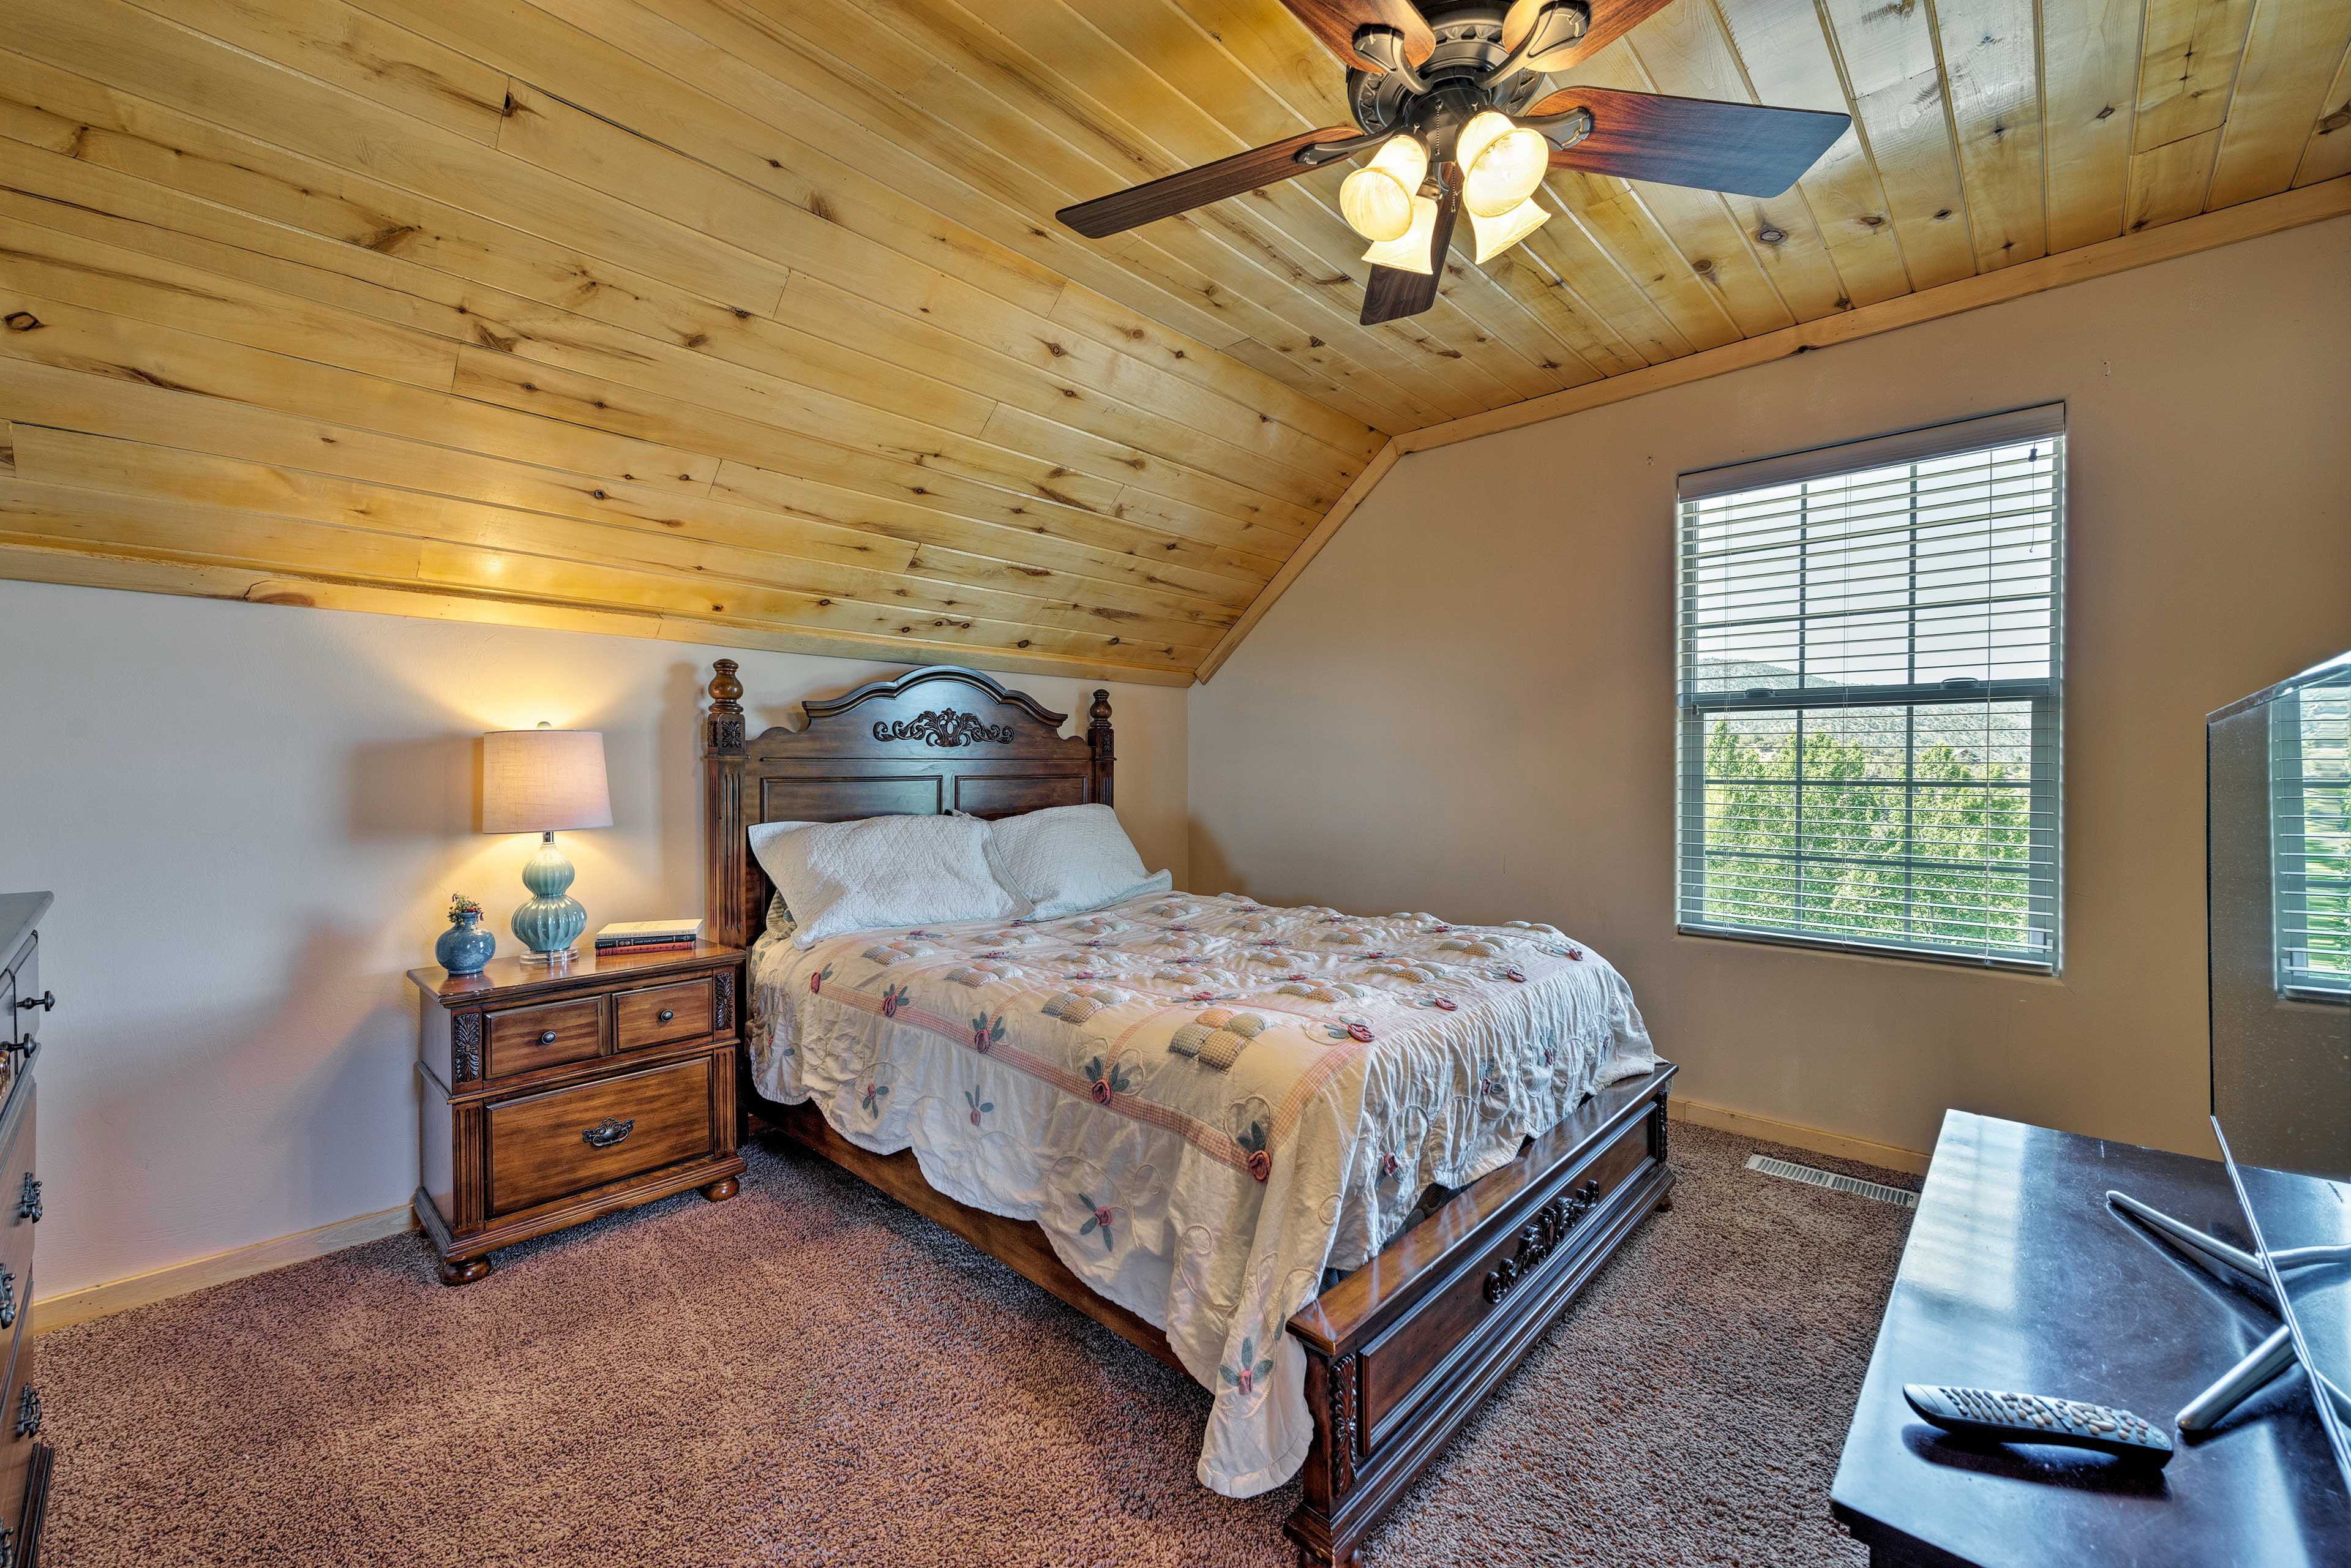 The second bedroom includes a queen bed as well.